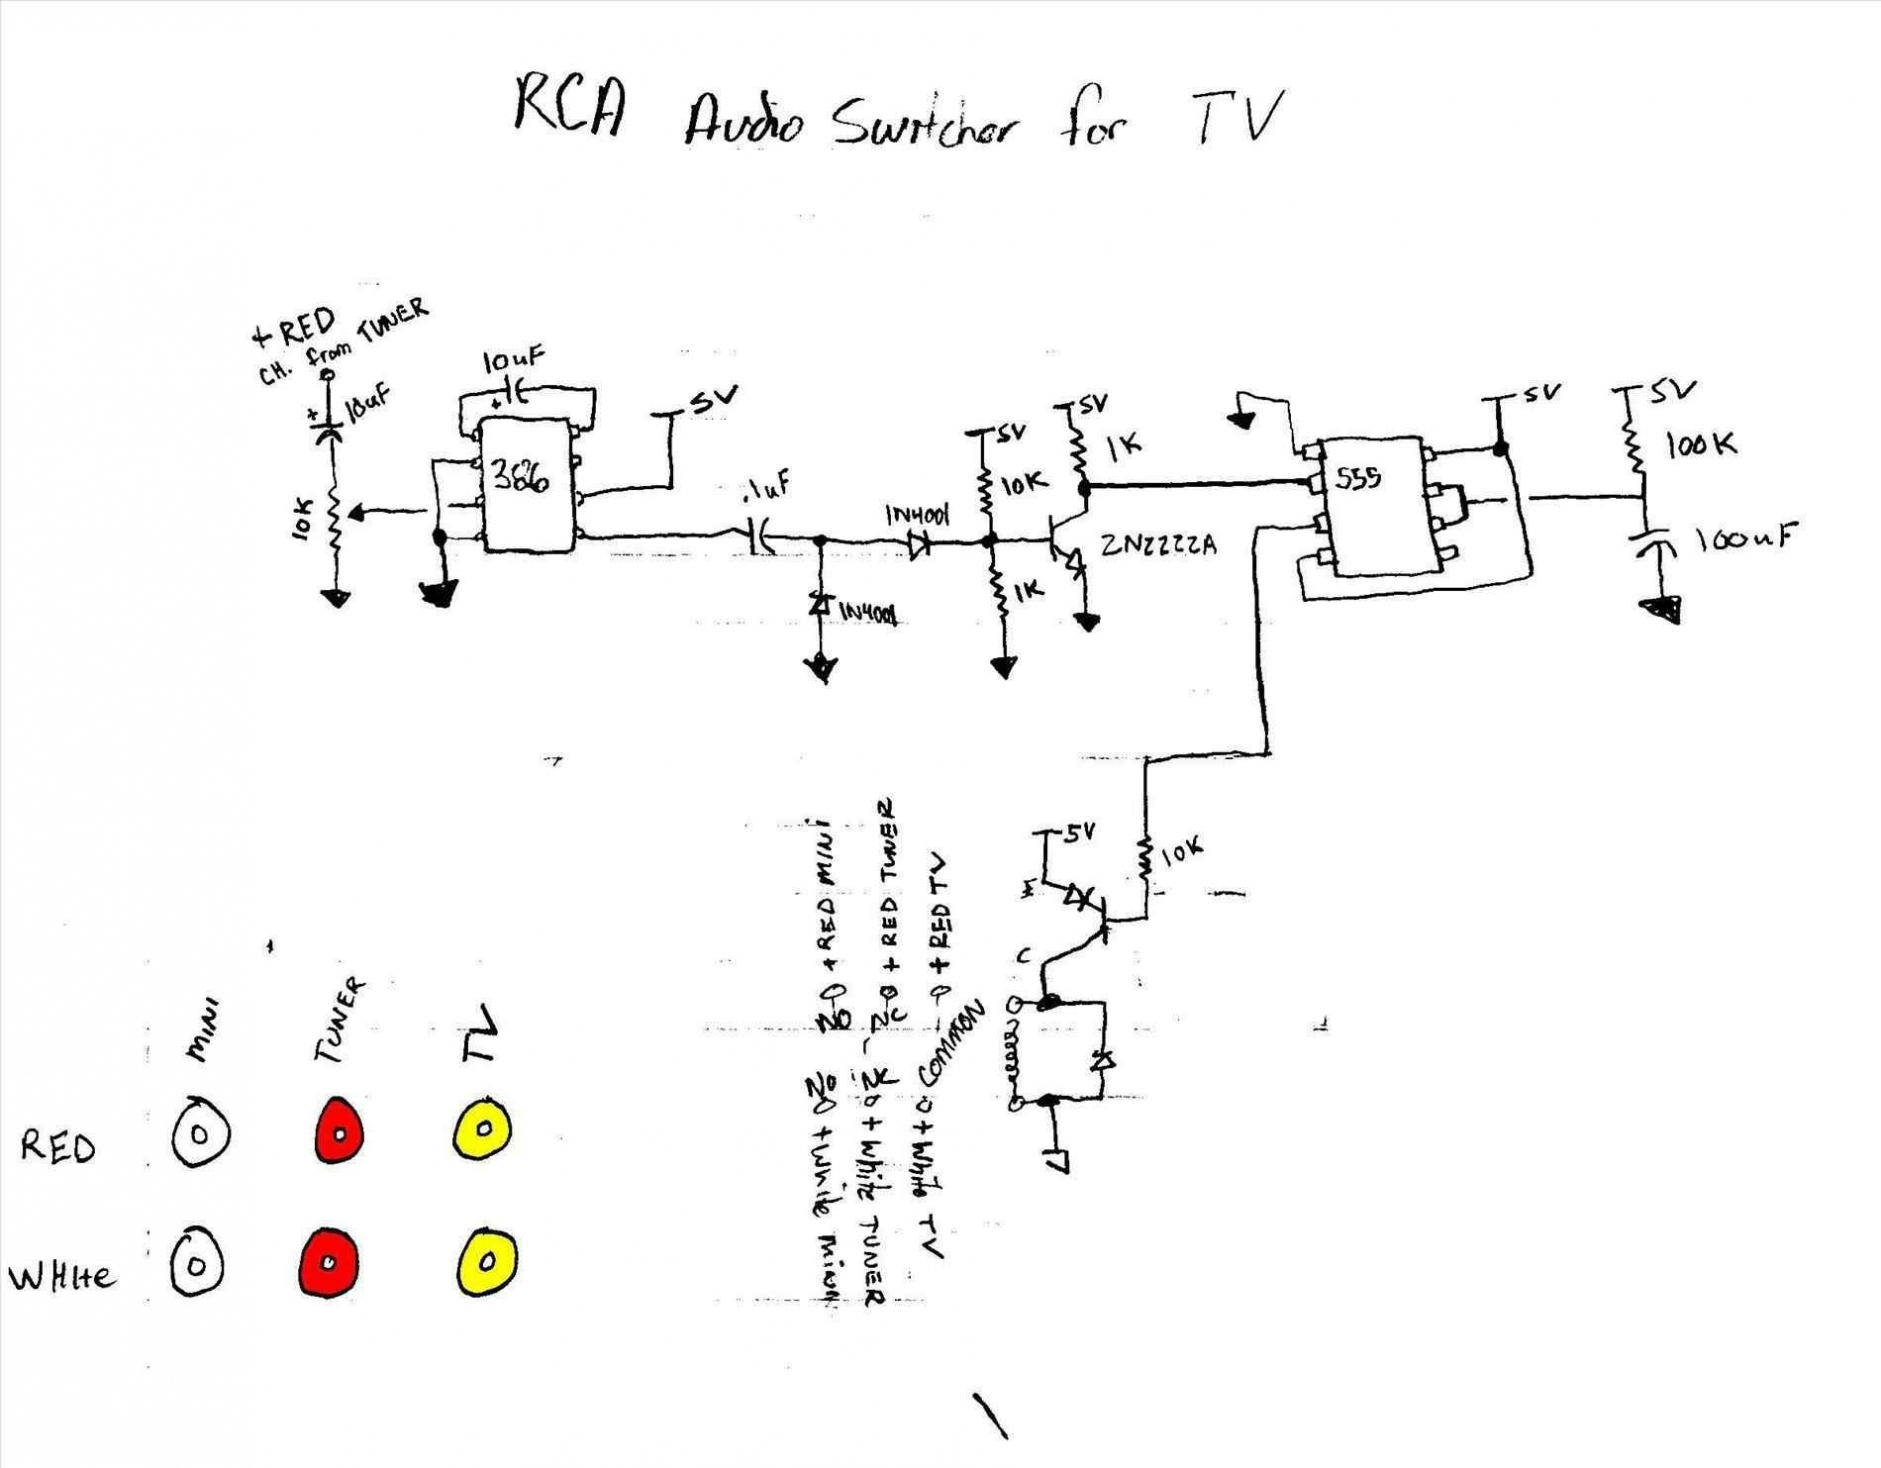 hight resolution of mini hdmi cable wiring diagram best micro hdmi cable wiring diagram rca wiring diagram